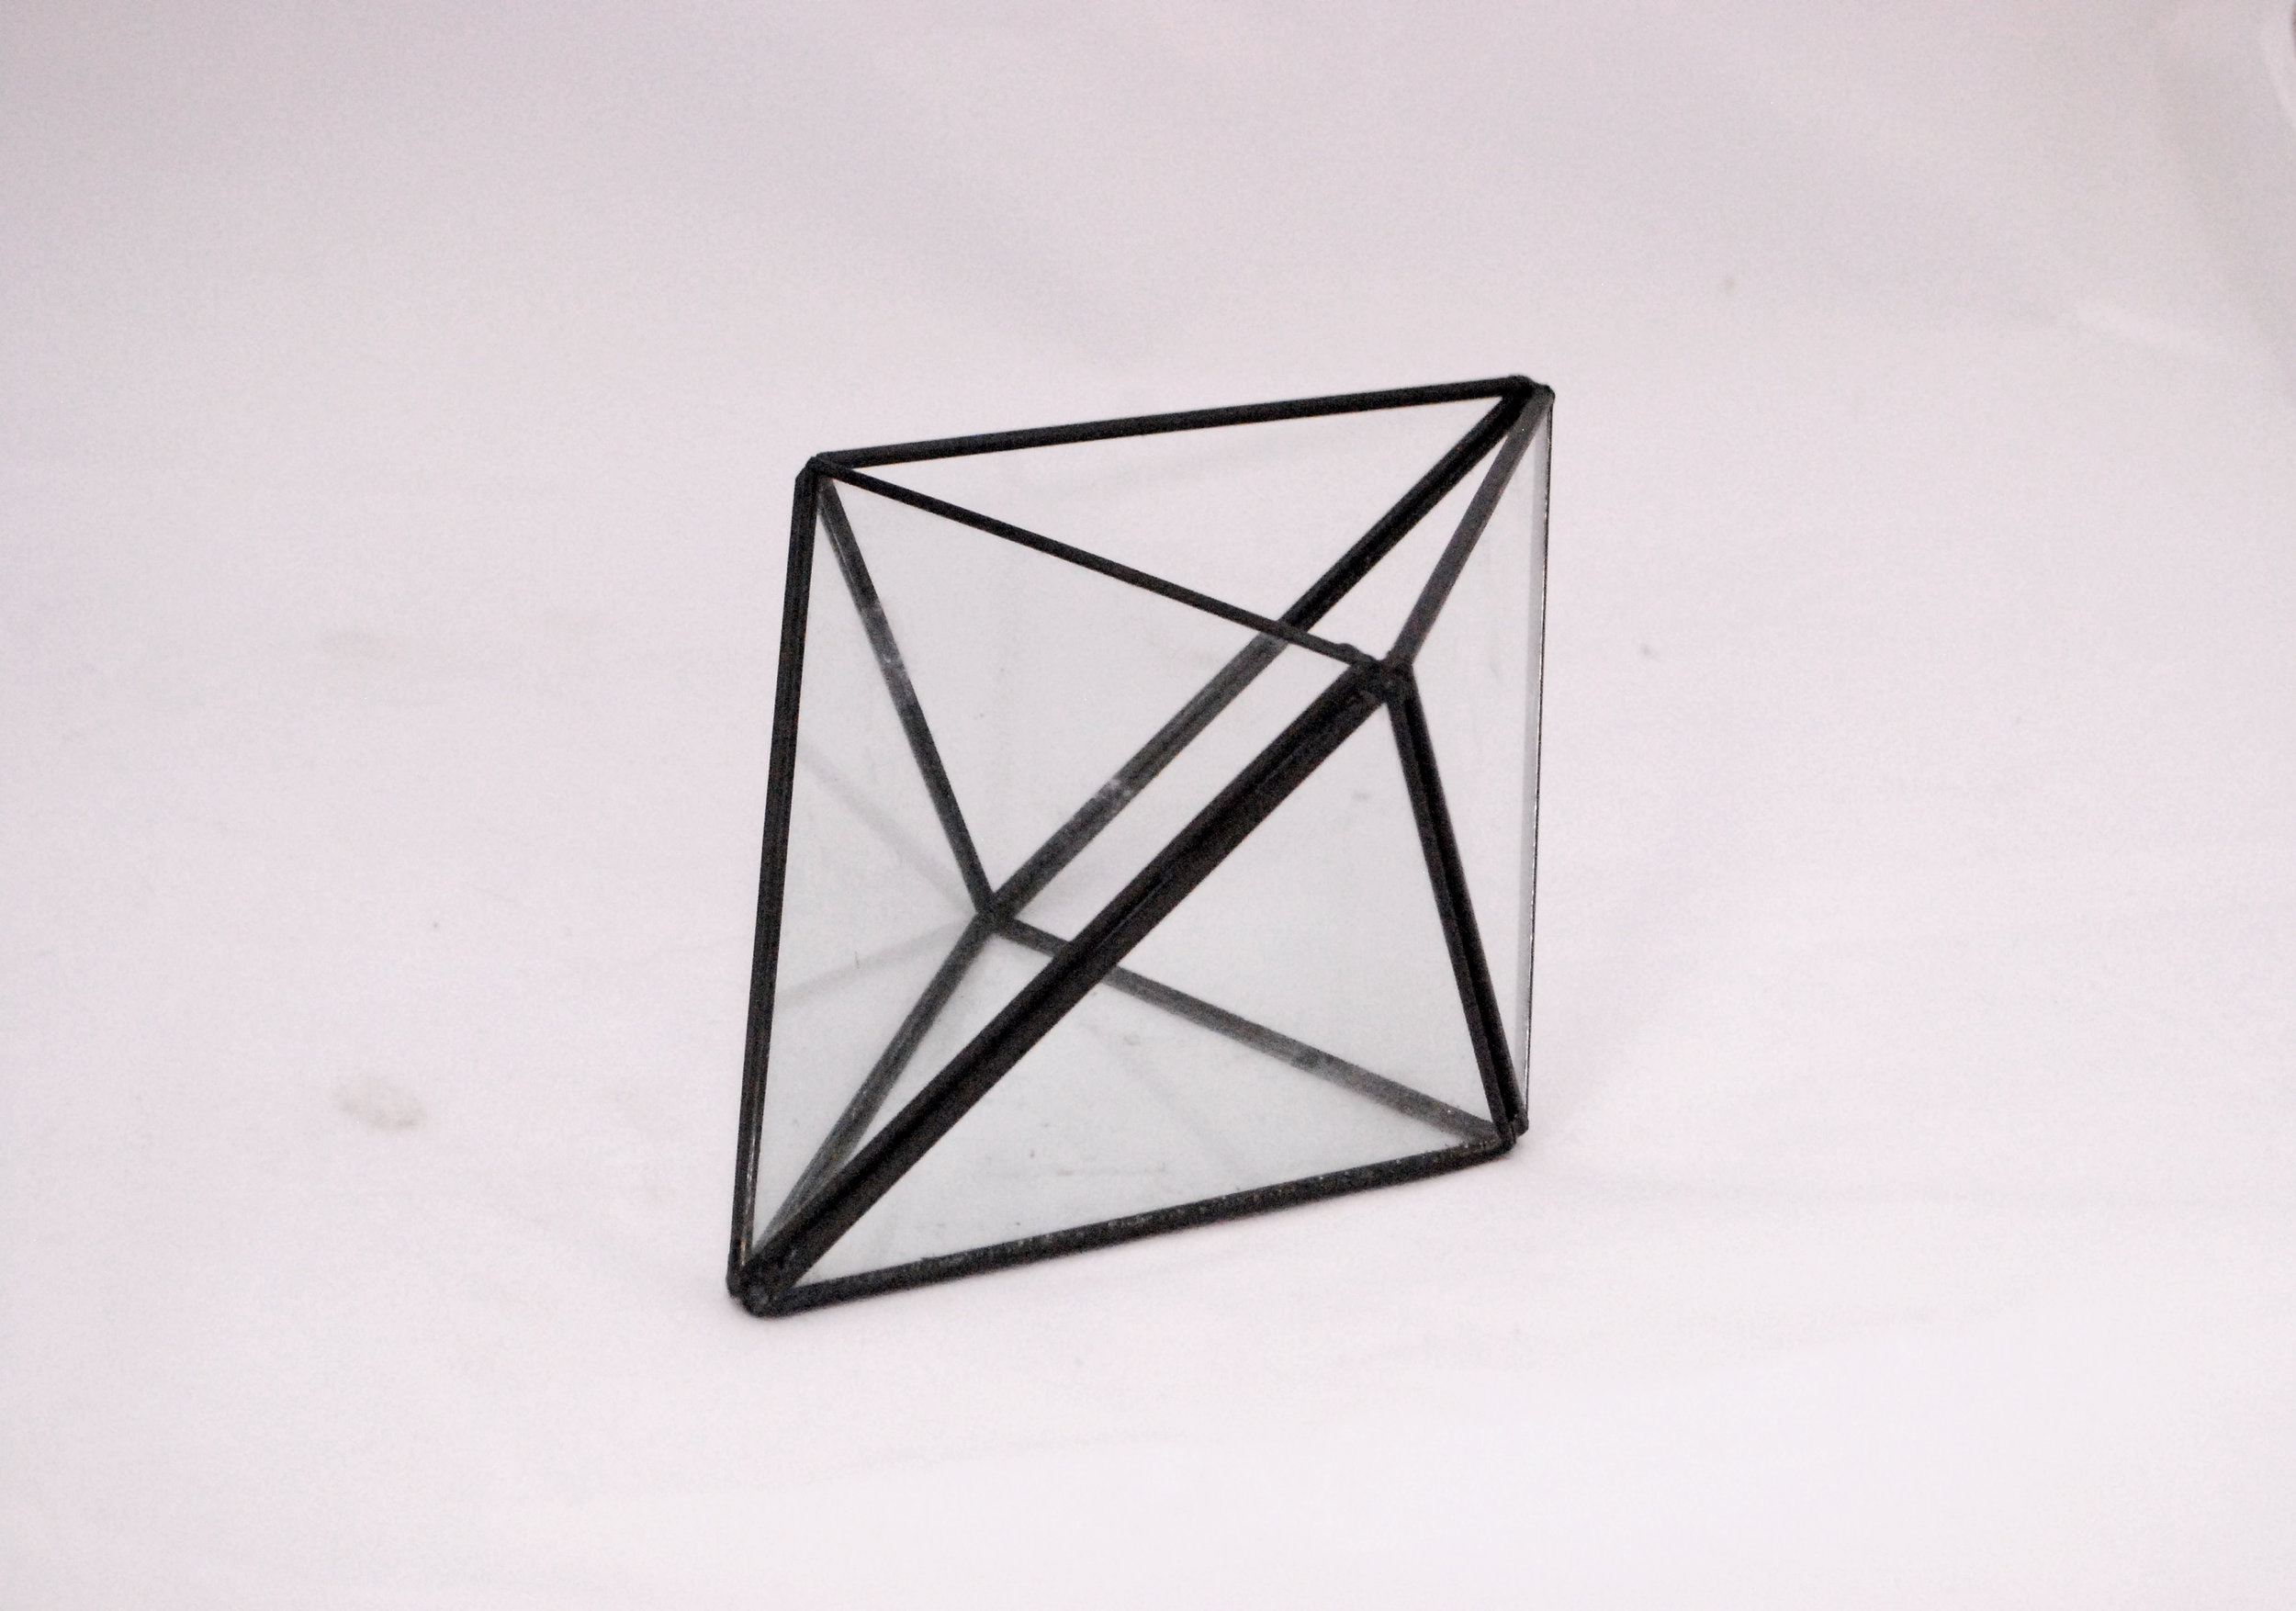 diamond - black terrarium   Quantity: 15  Price: $7.50